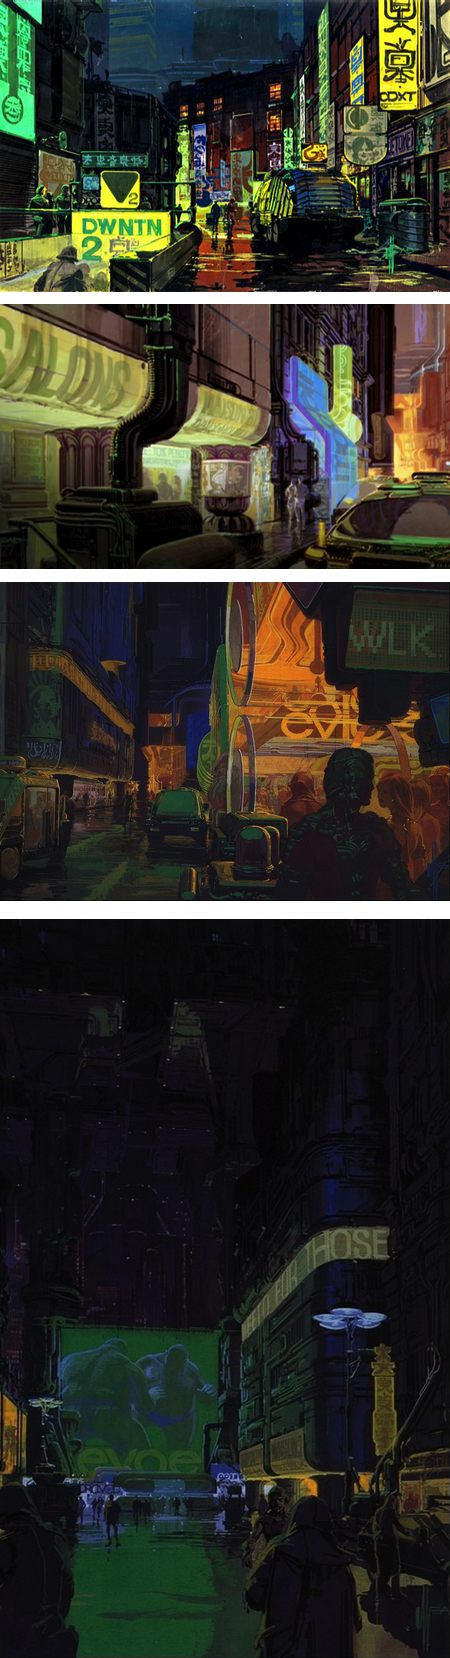 Syd Mead Concept Art : concept, Blade, Runner, Concept, Lines, Colors